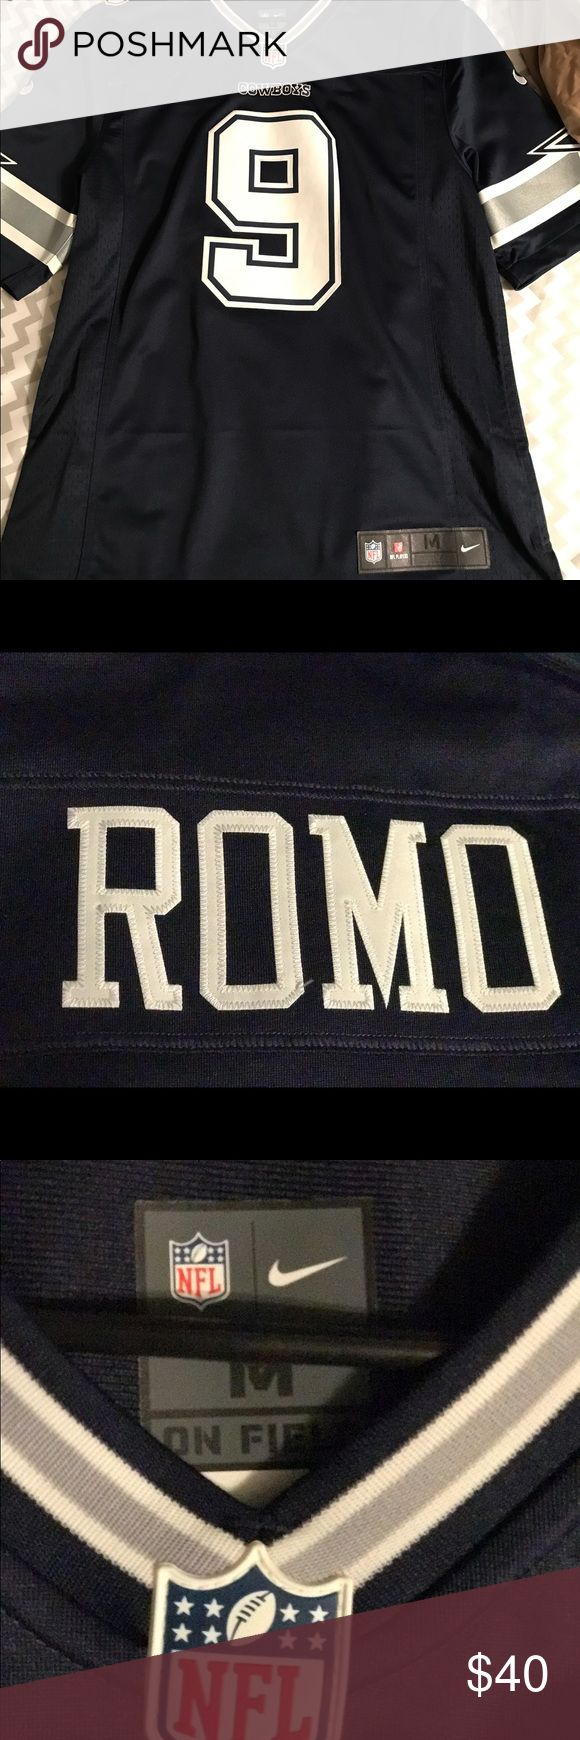 Nike Limited Tony Romo stitched jersey This is a Nike Limited stitched jersey of Tony Romo, awesome looking jersey and great quality. Men's size medium. Only worn a few times on sundays for the games with no sign of wear and stored in a smoke free home. Ordered directly from NFL shop Nike Other